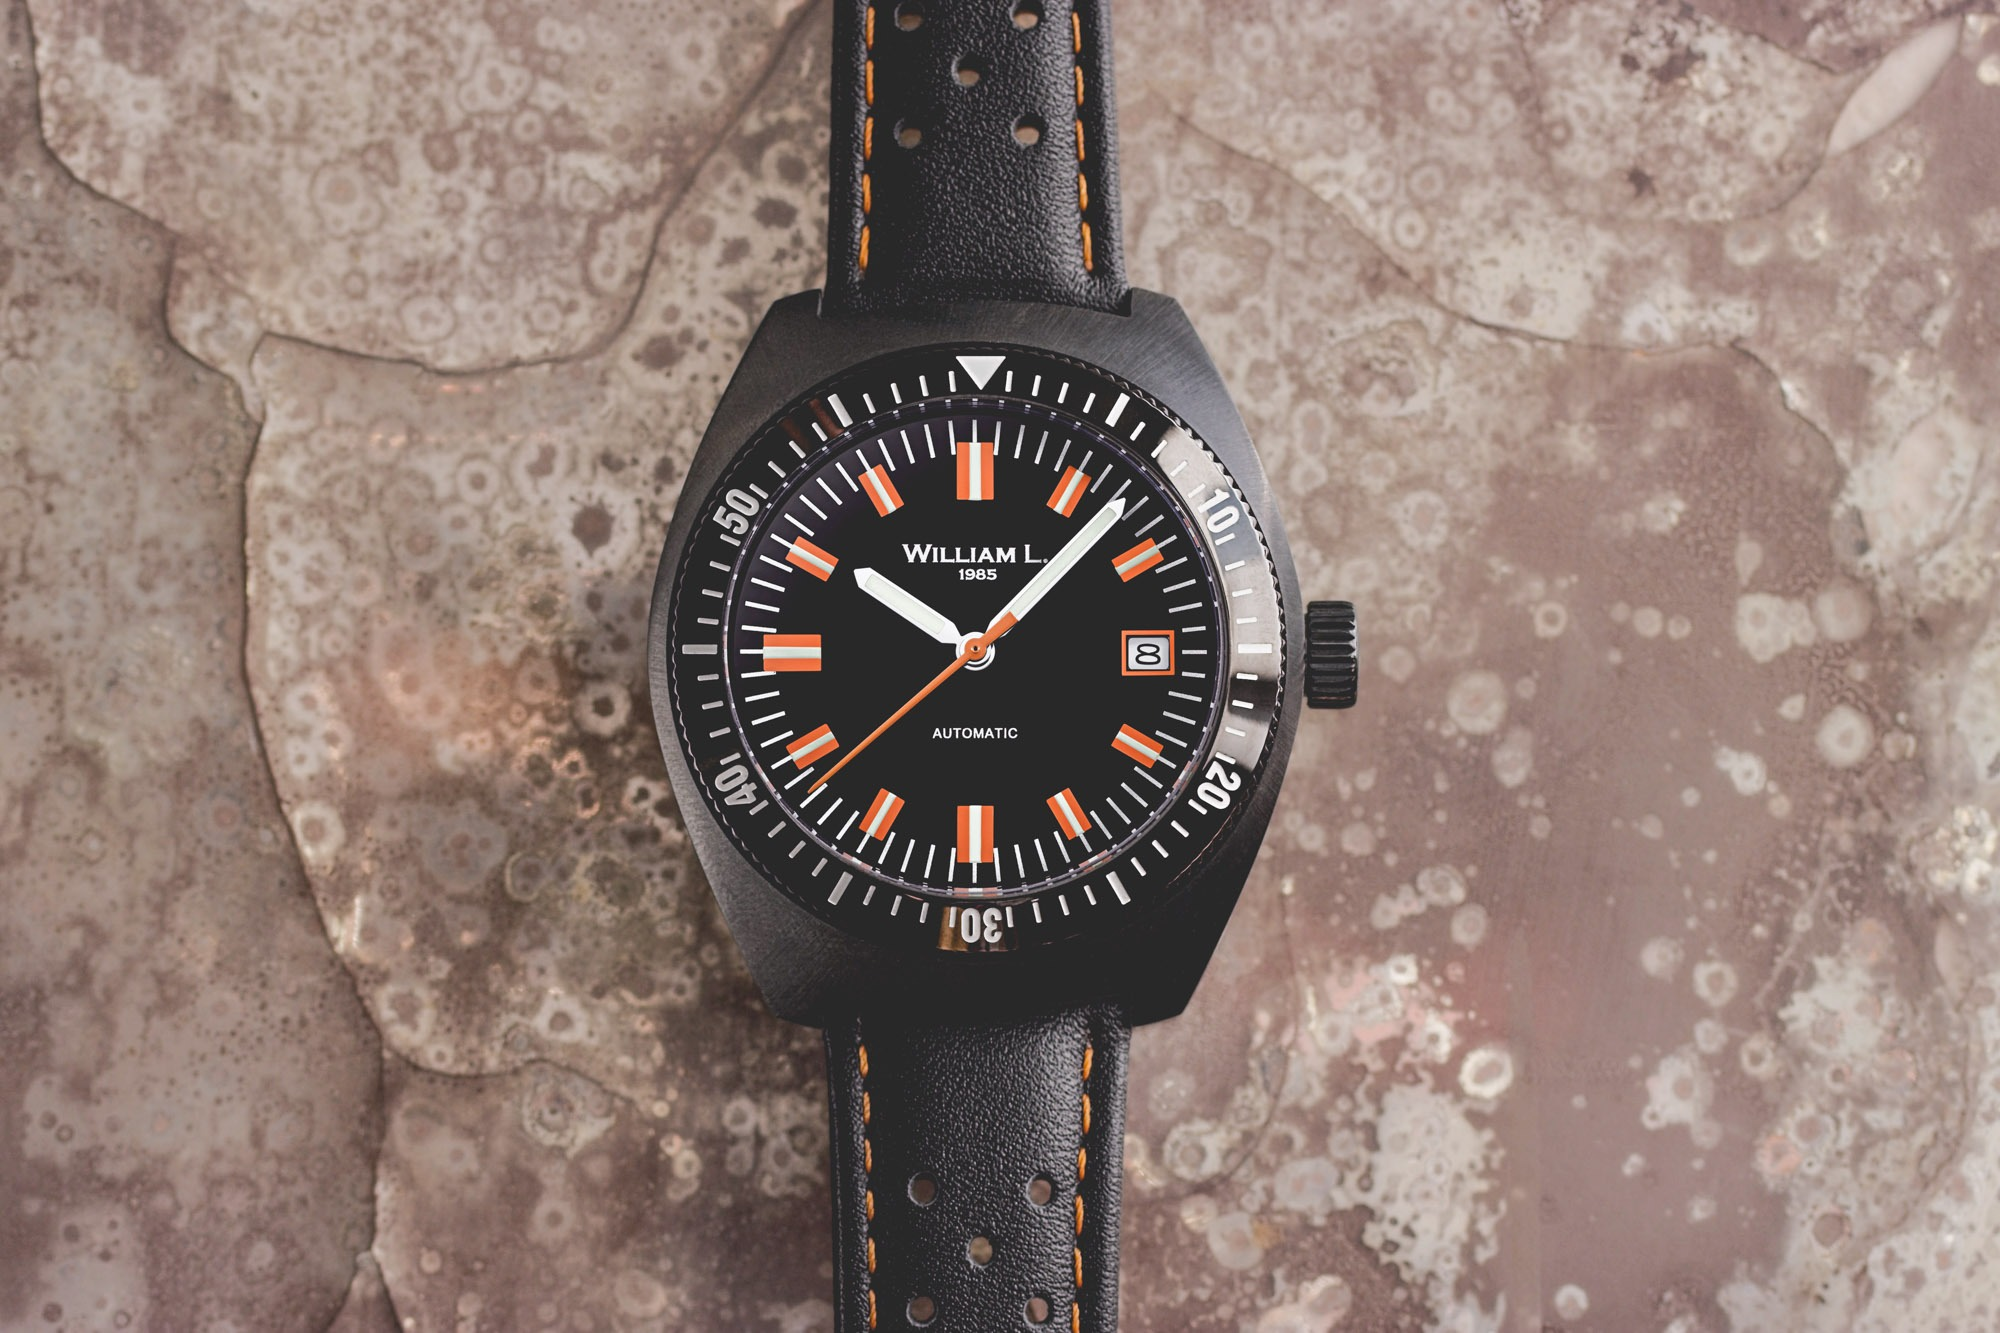 William L 1985 - Automatic Diver Seventies